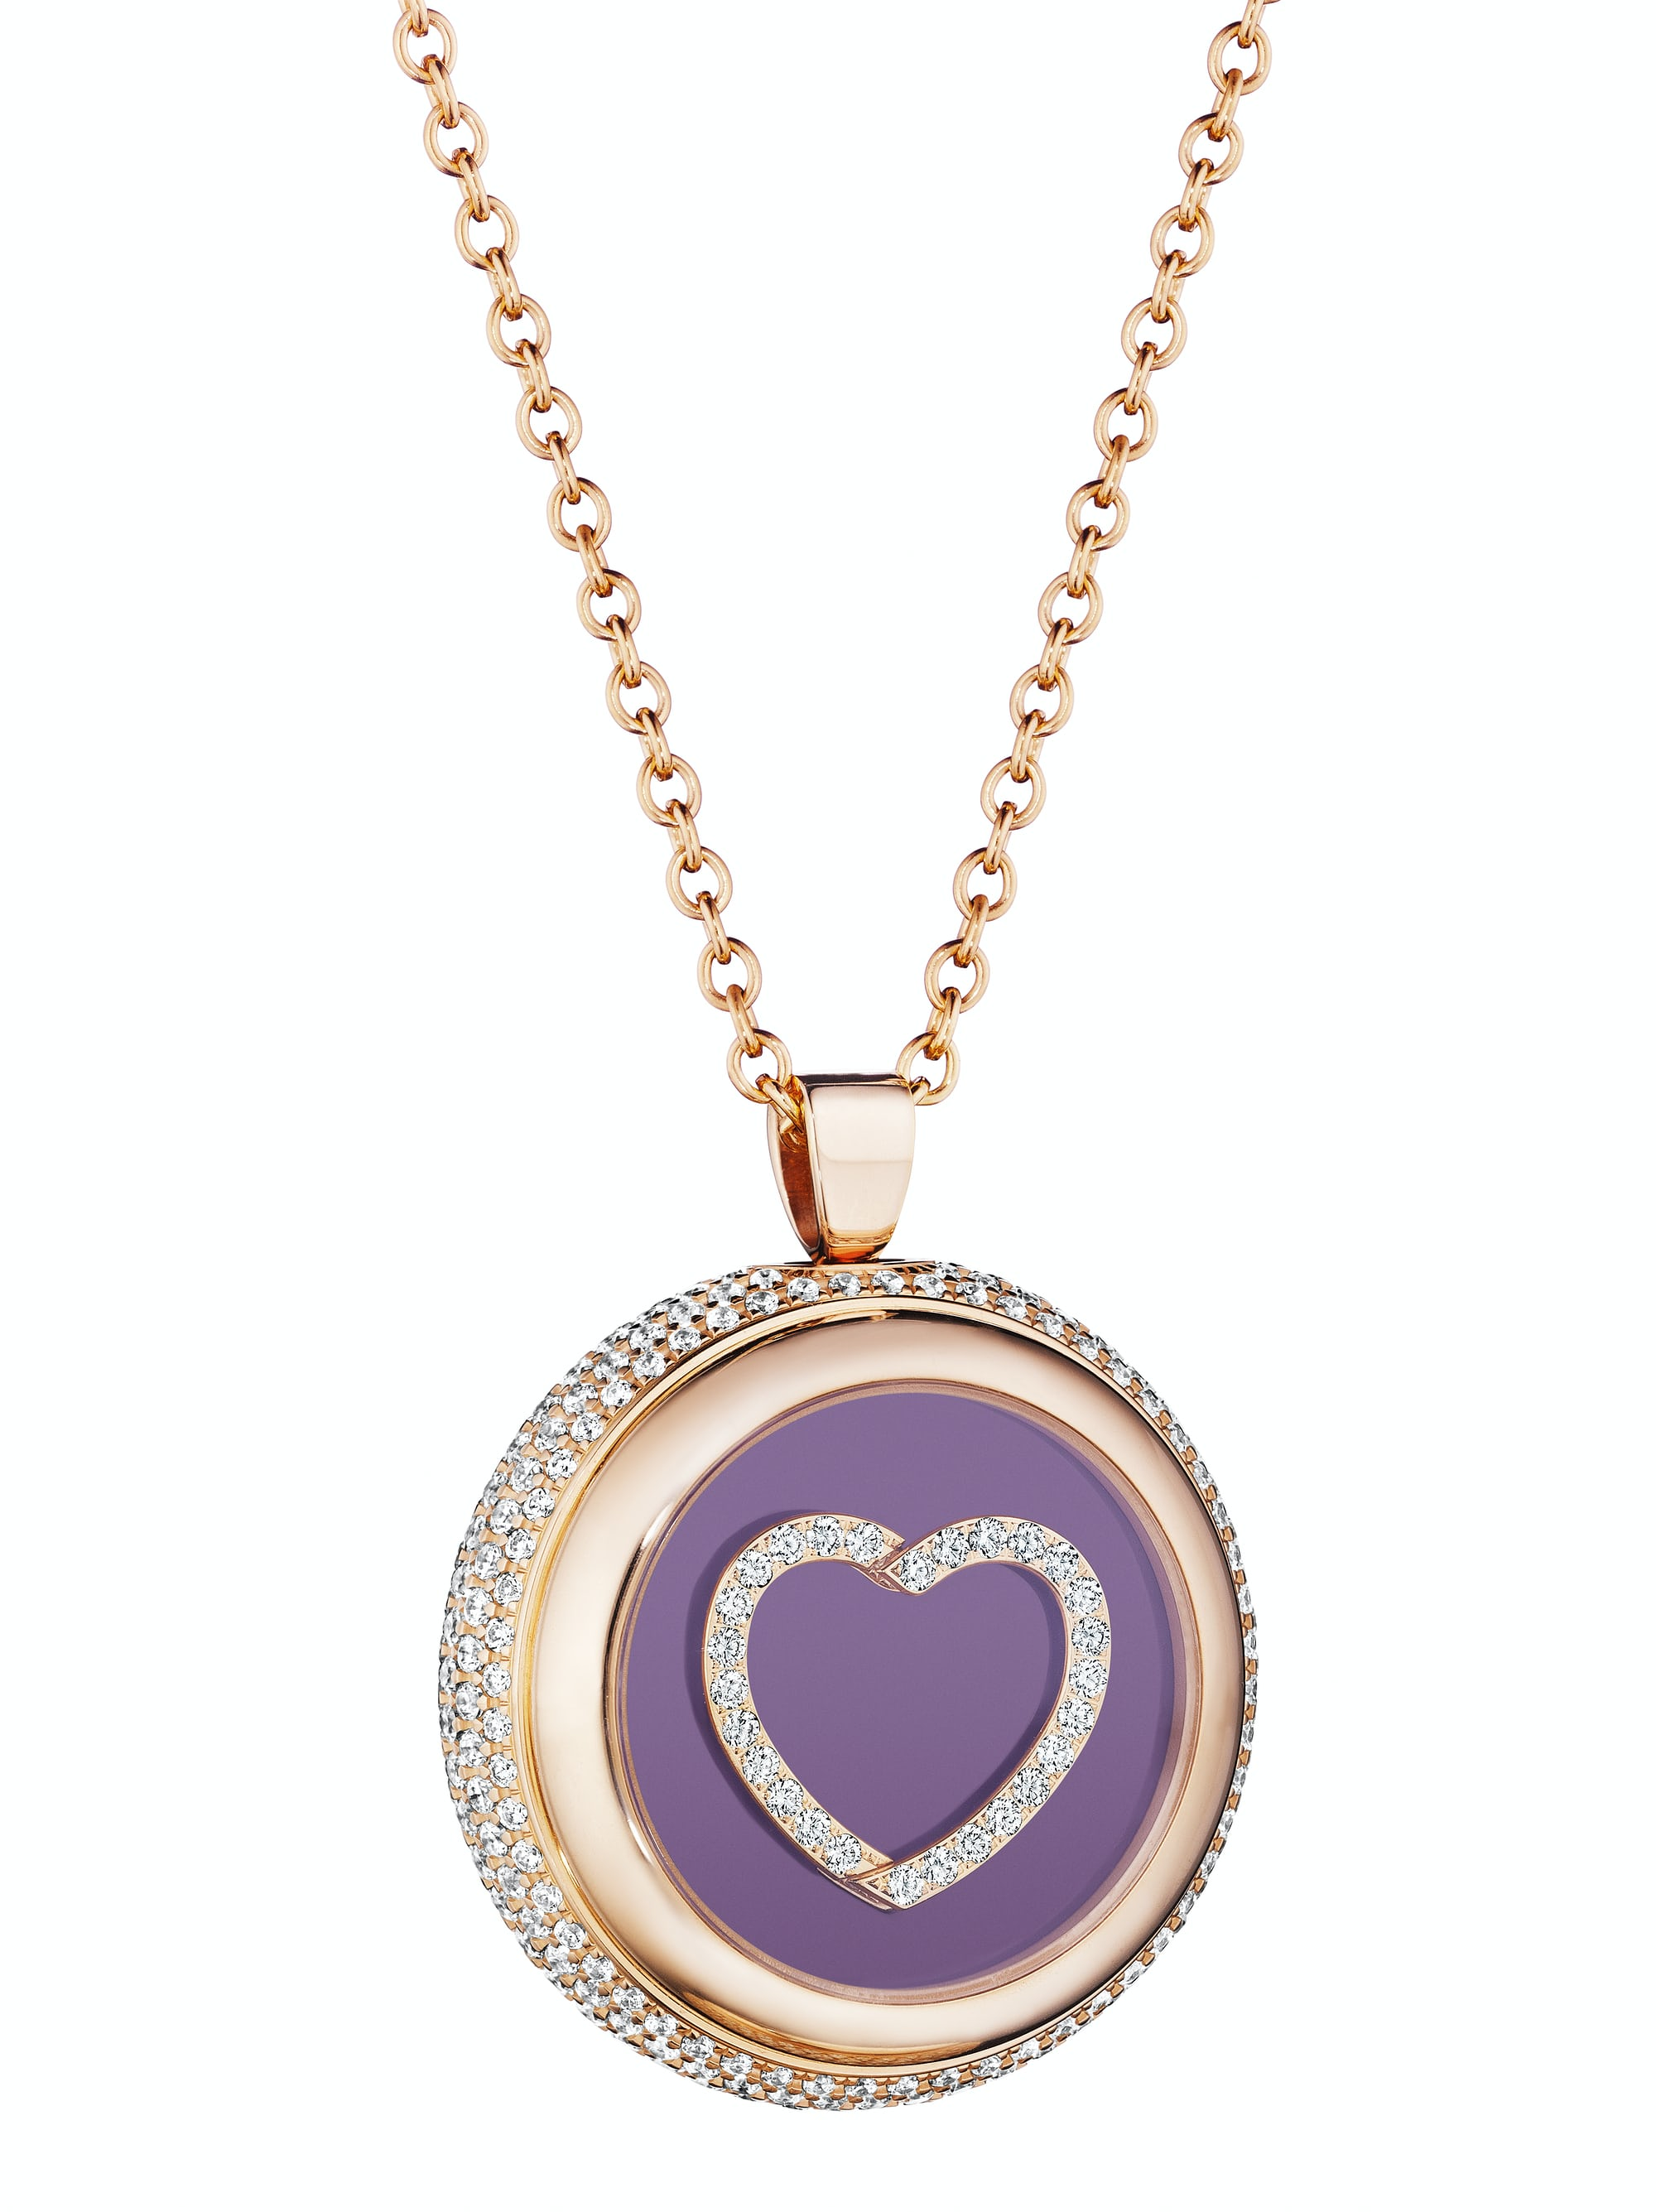 """paul forrest co. Introducing: The """"Heart's Passion"""" Beating Mechanical Heart Pendant From Paul Forrest Co. Introducing: The """"Heart's Passion"""" Beating Mechanical Heart Pendant From Paul Forrest Co. IMG 1318"""